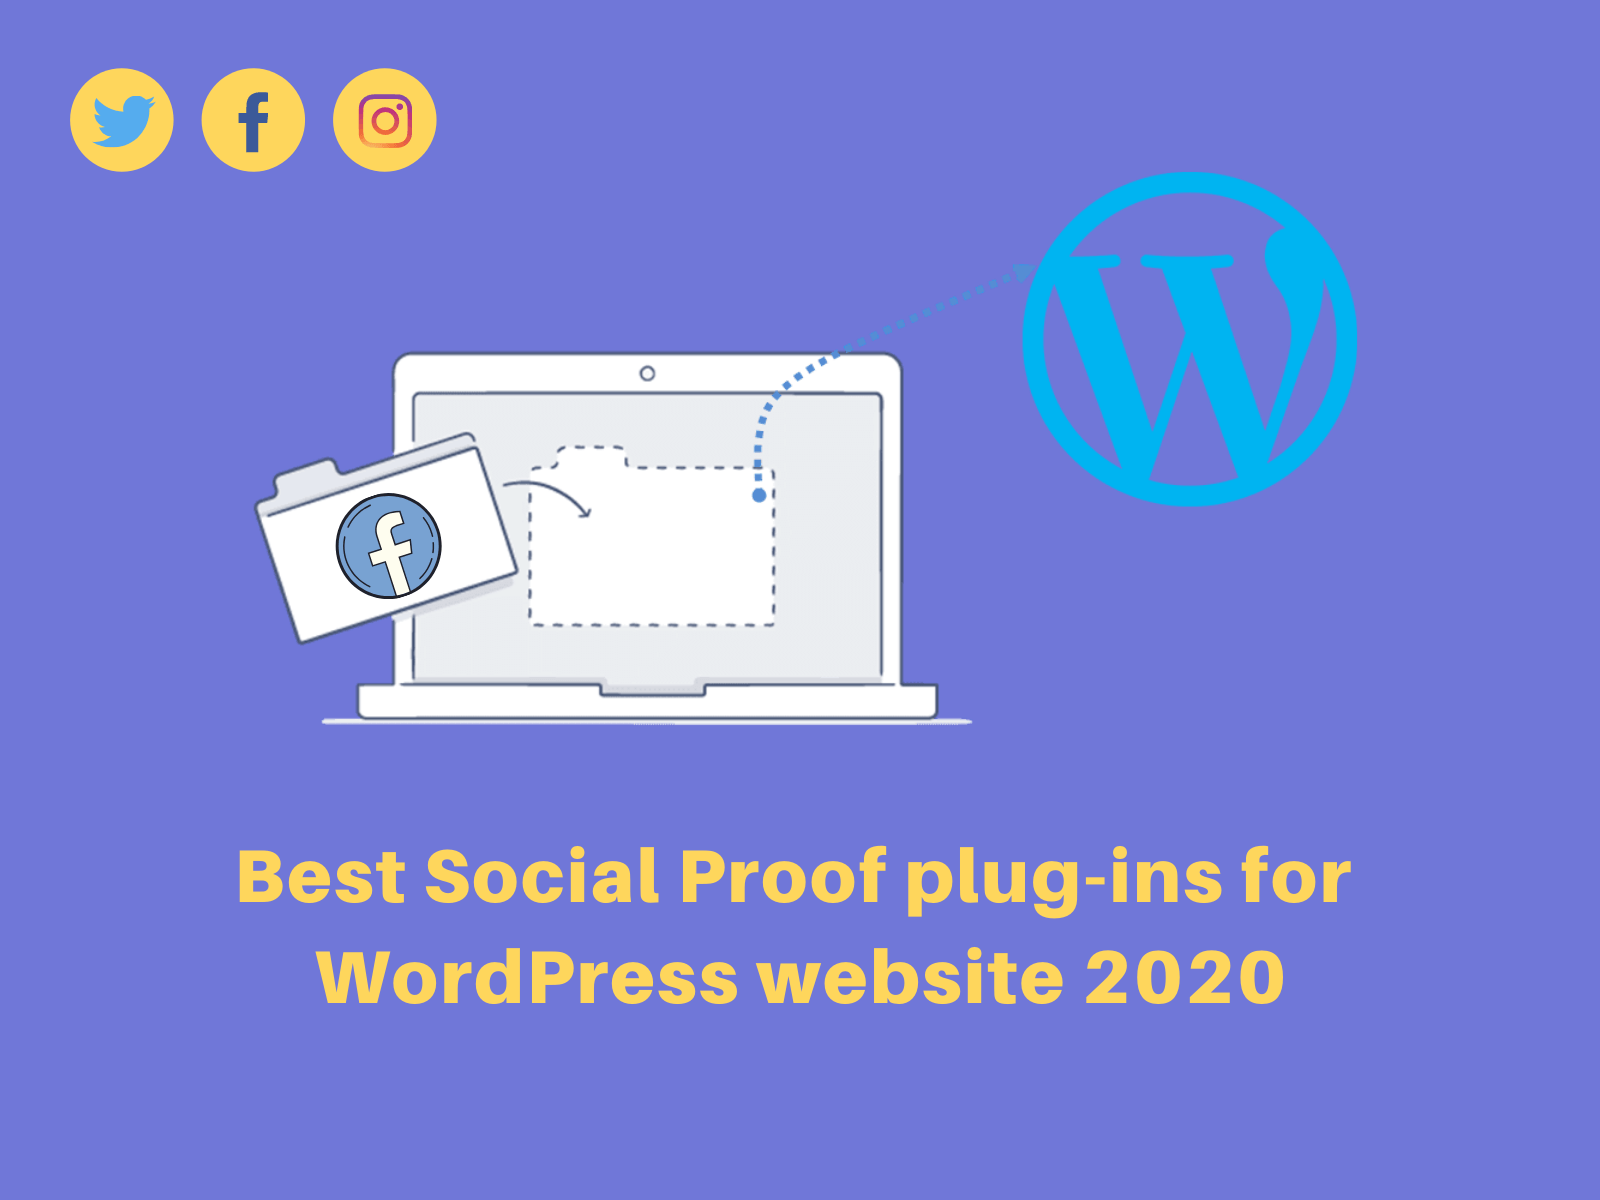 Best socoal proof Plugins for wordpress